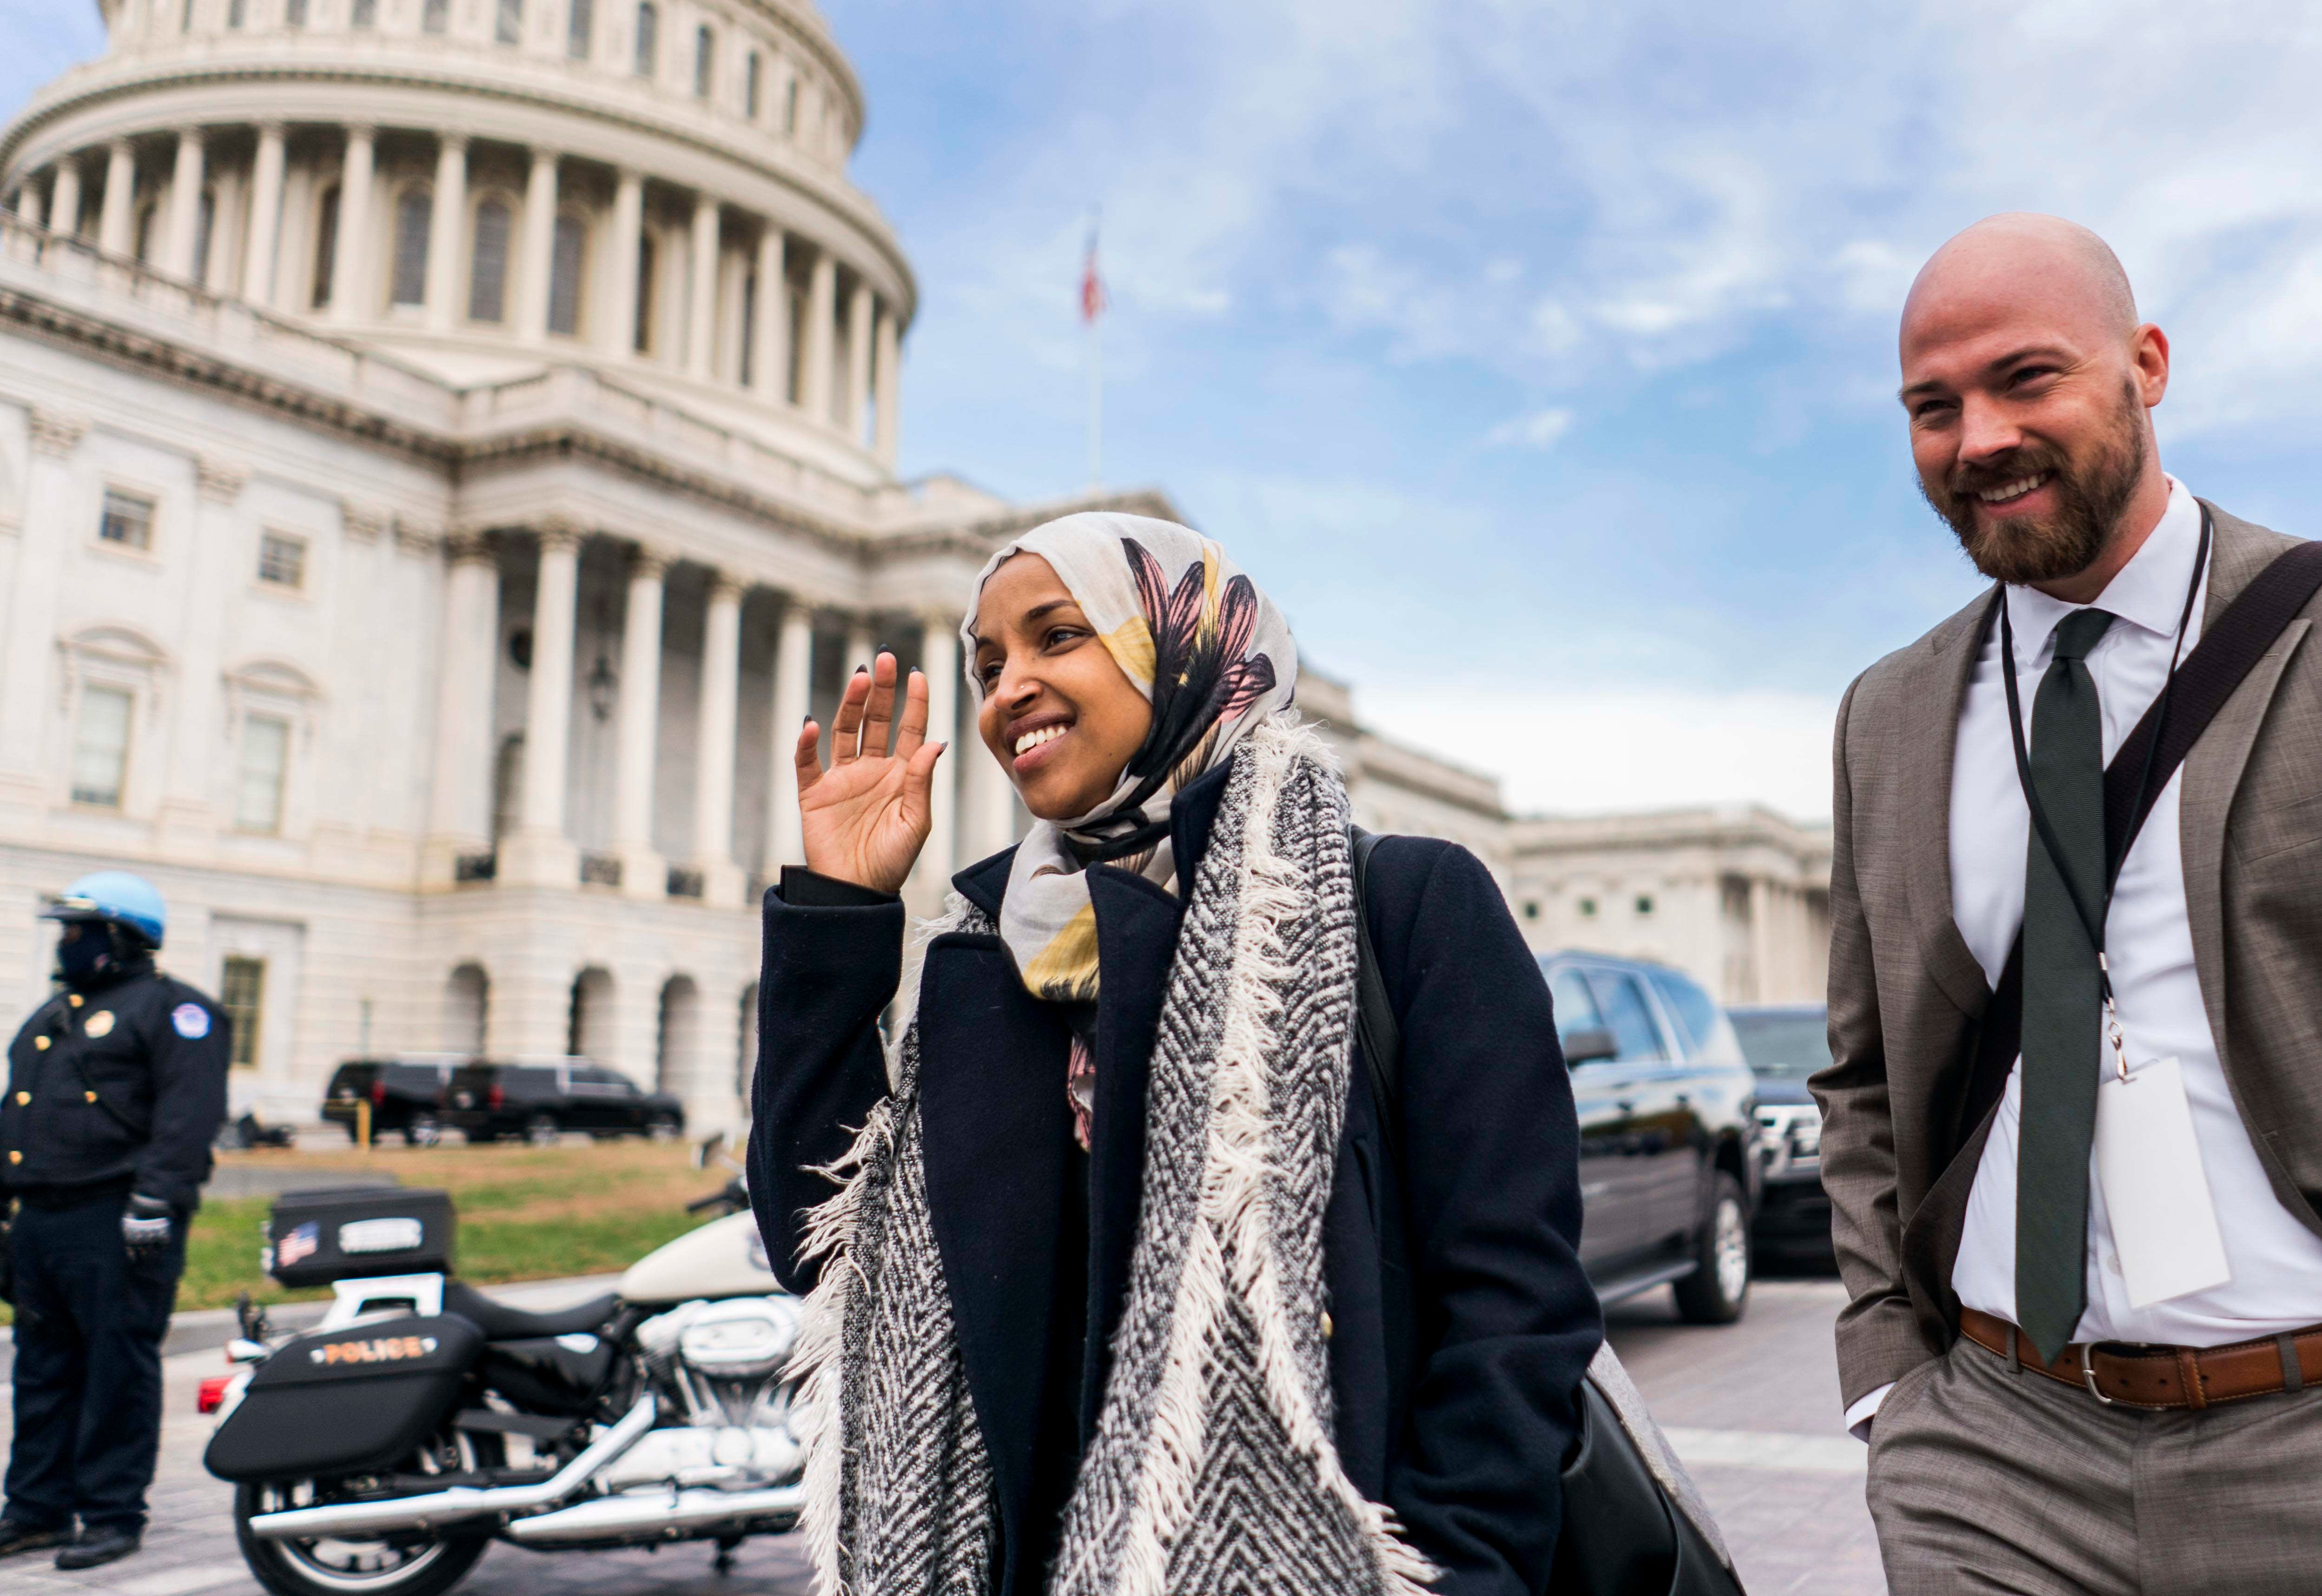 WASHINGTON, DC - On the US Capitol east front plaza 116th Congressional freshman Representatives, like Ilhan Omar (D-MN), leave with staff after the Member-Elect class photo on the Capitol Hill in Washington, DC on Wednesday November 14, 2018. (Photo by Melina Mara/The Washington Post via Getty Images)